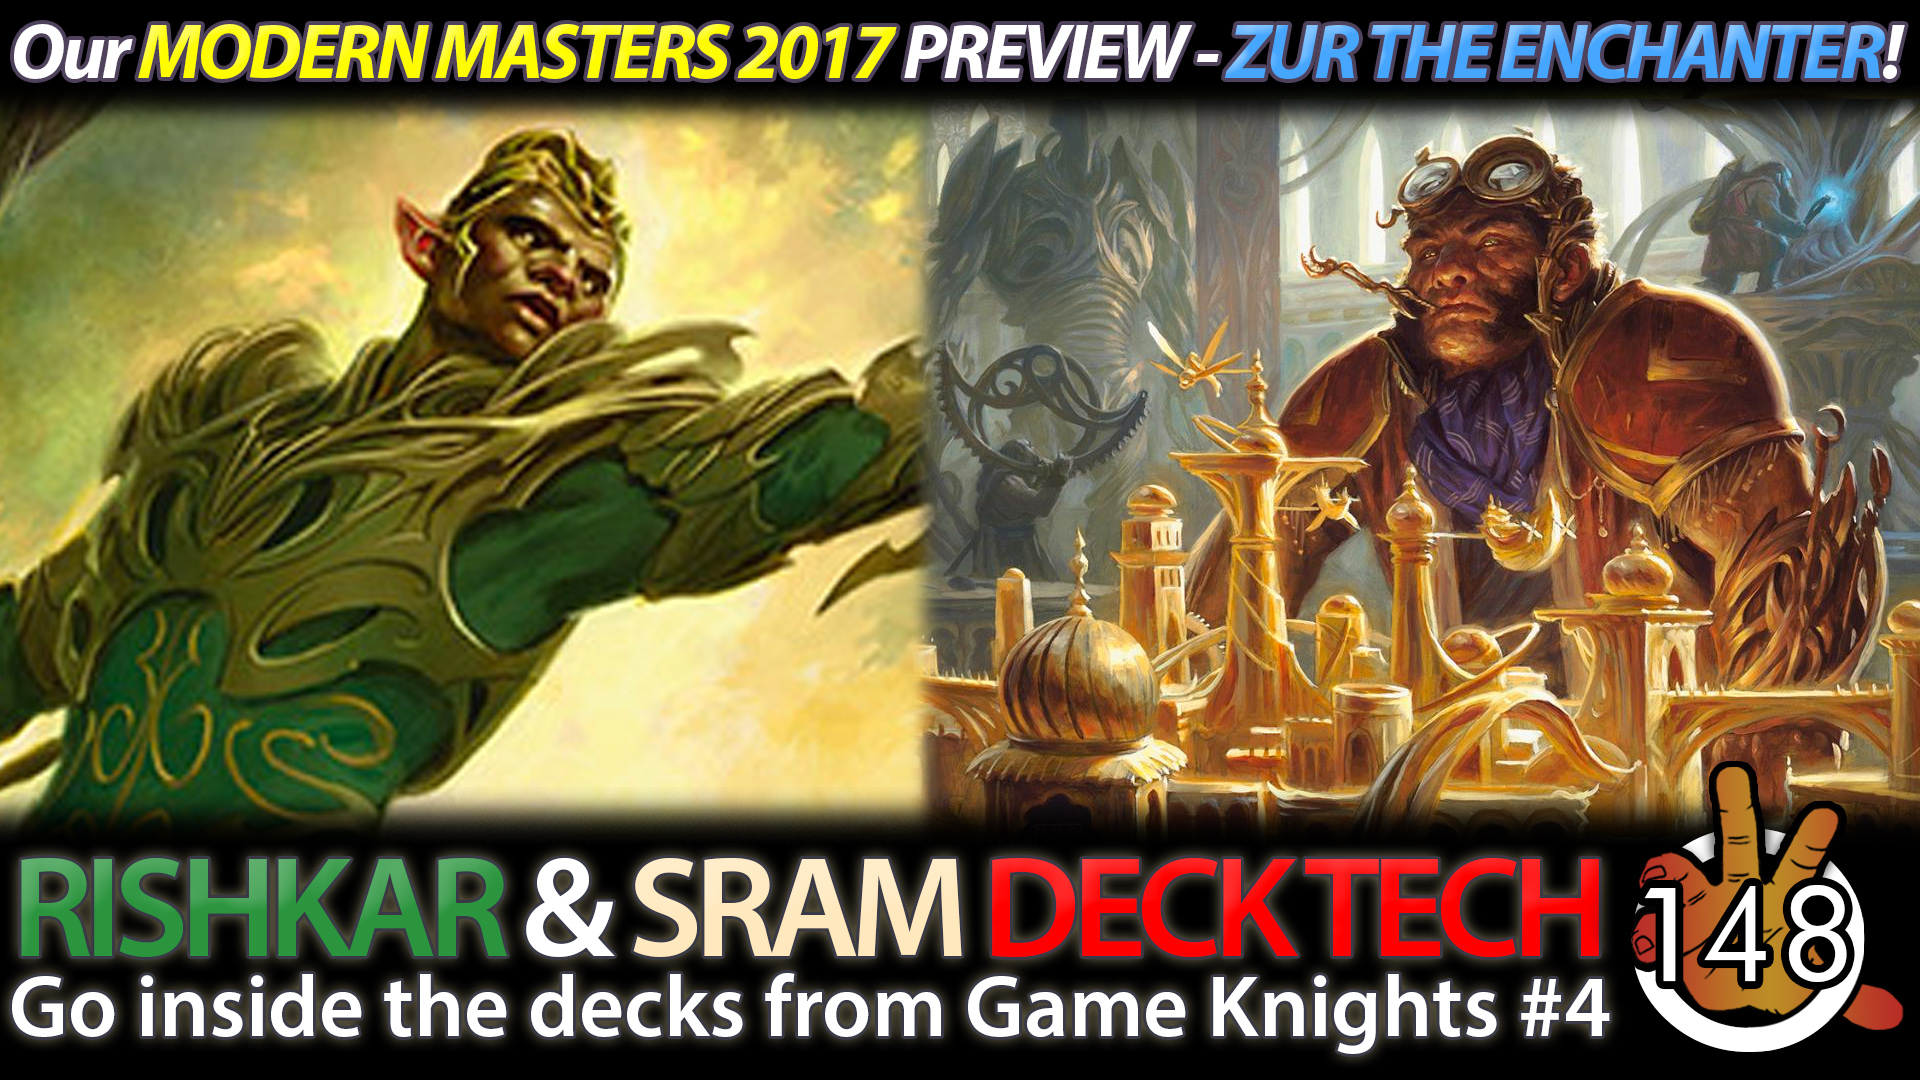 Copyright 169 2017 the design co all rights reserved - Modern Masters 2017 Preview Rishkar Sram Game Knights Deck Tech 148 02 28 2017